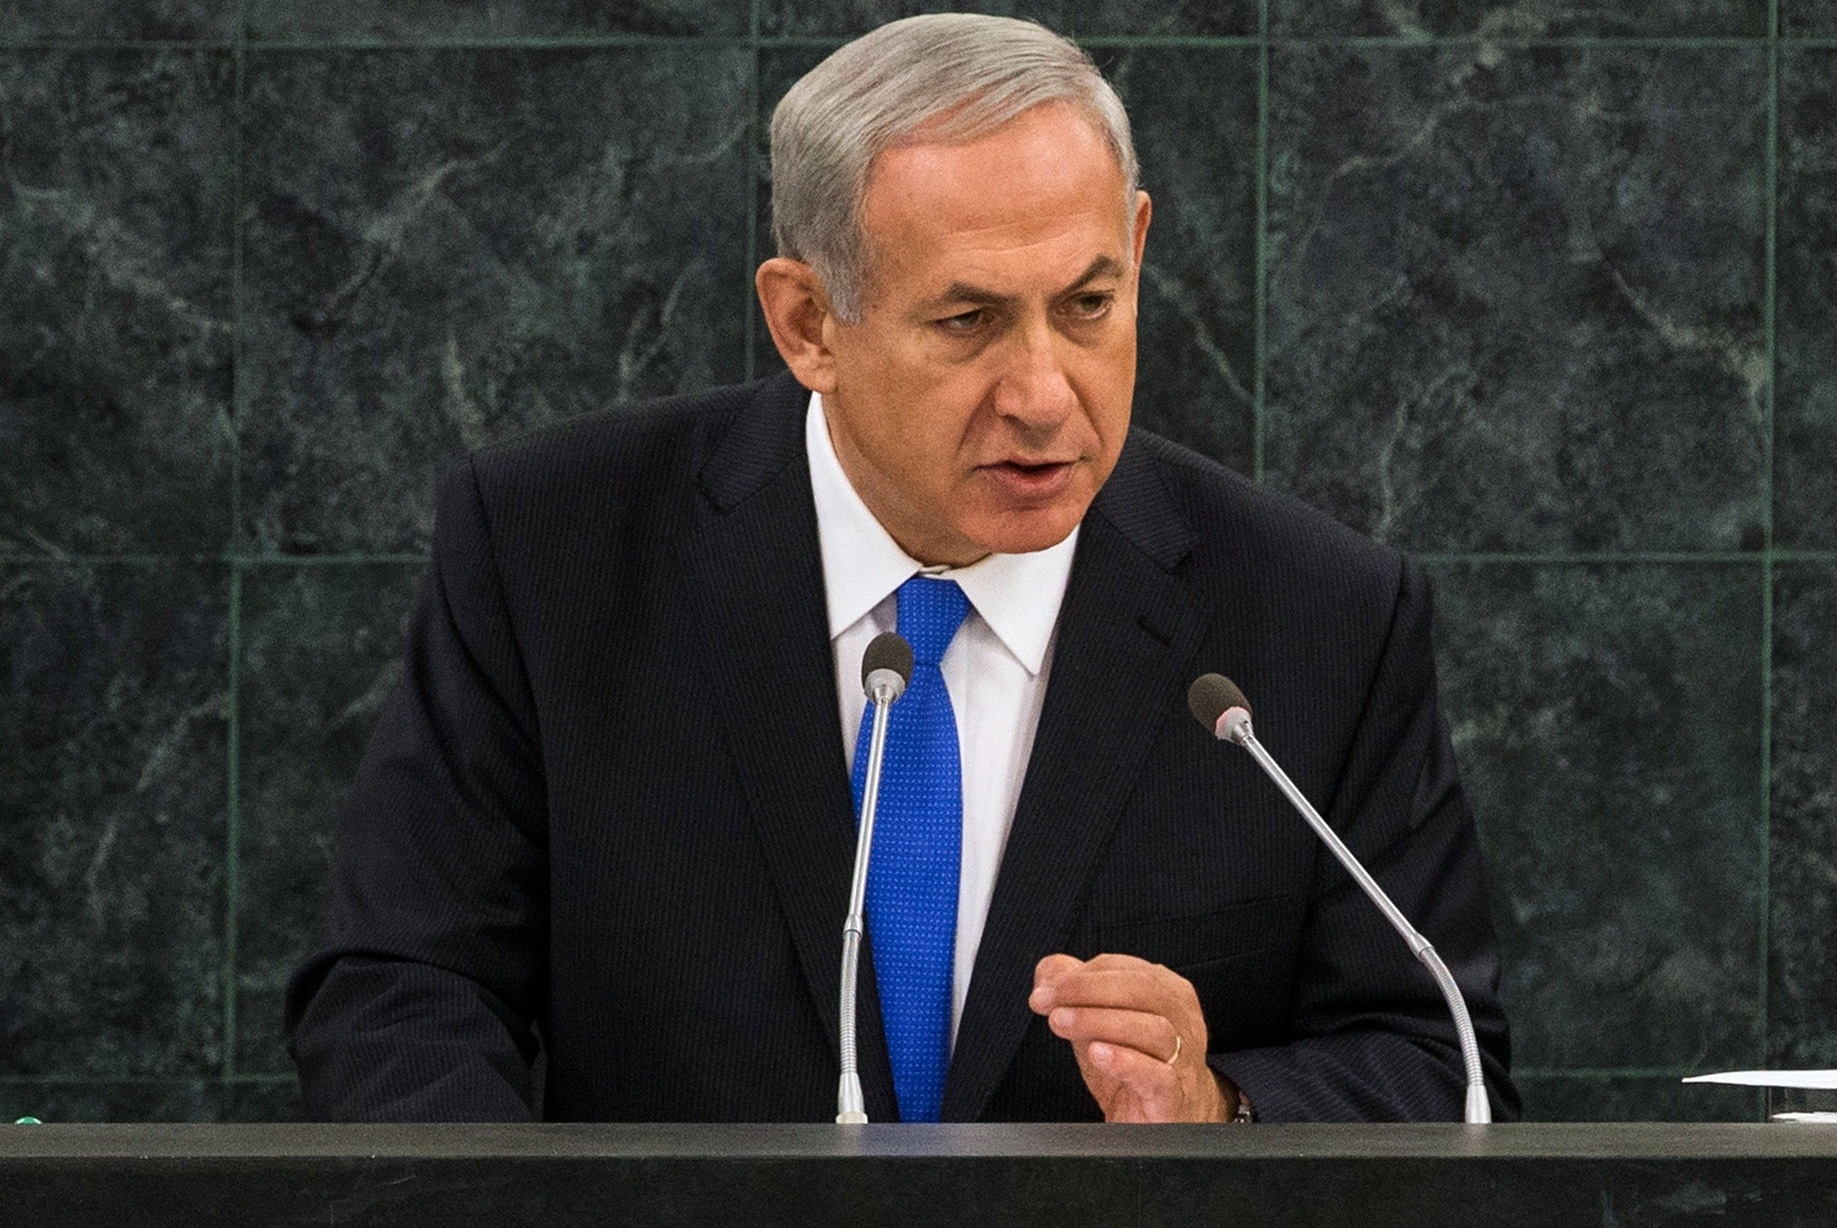 Israeli Prime Minister Benjamin Netanyahu speaks at the 68th United Nations General Assembly on Oct. 1, 2013. (Andrew Burton/Getty Images)